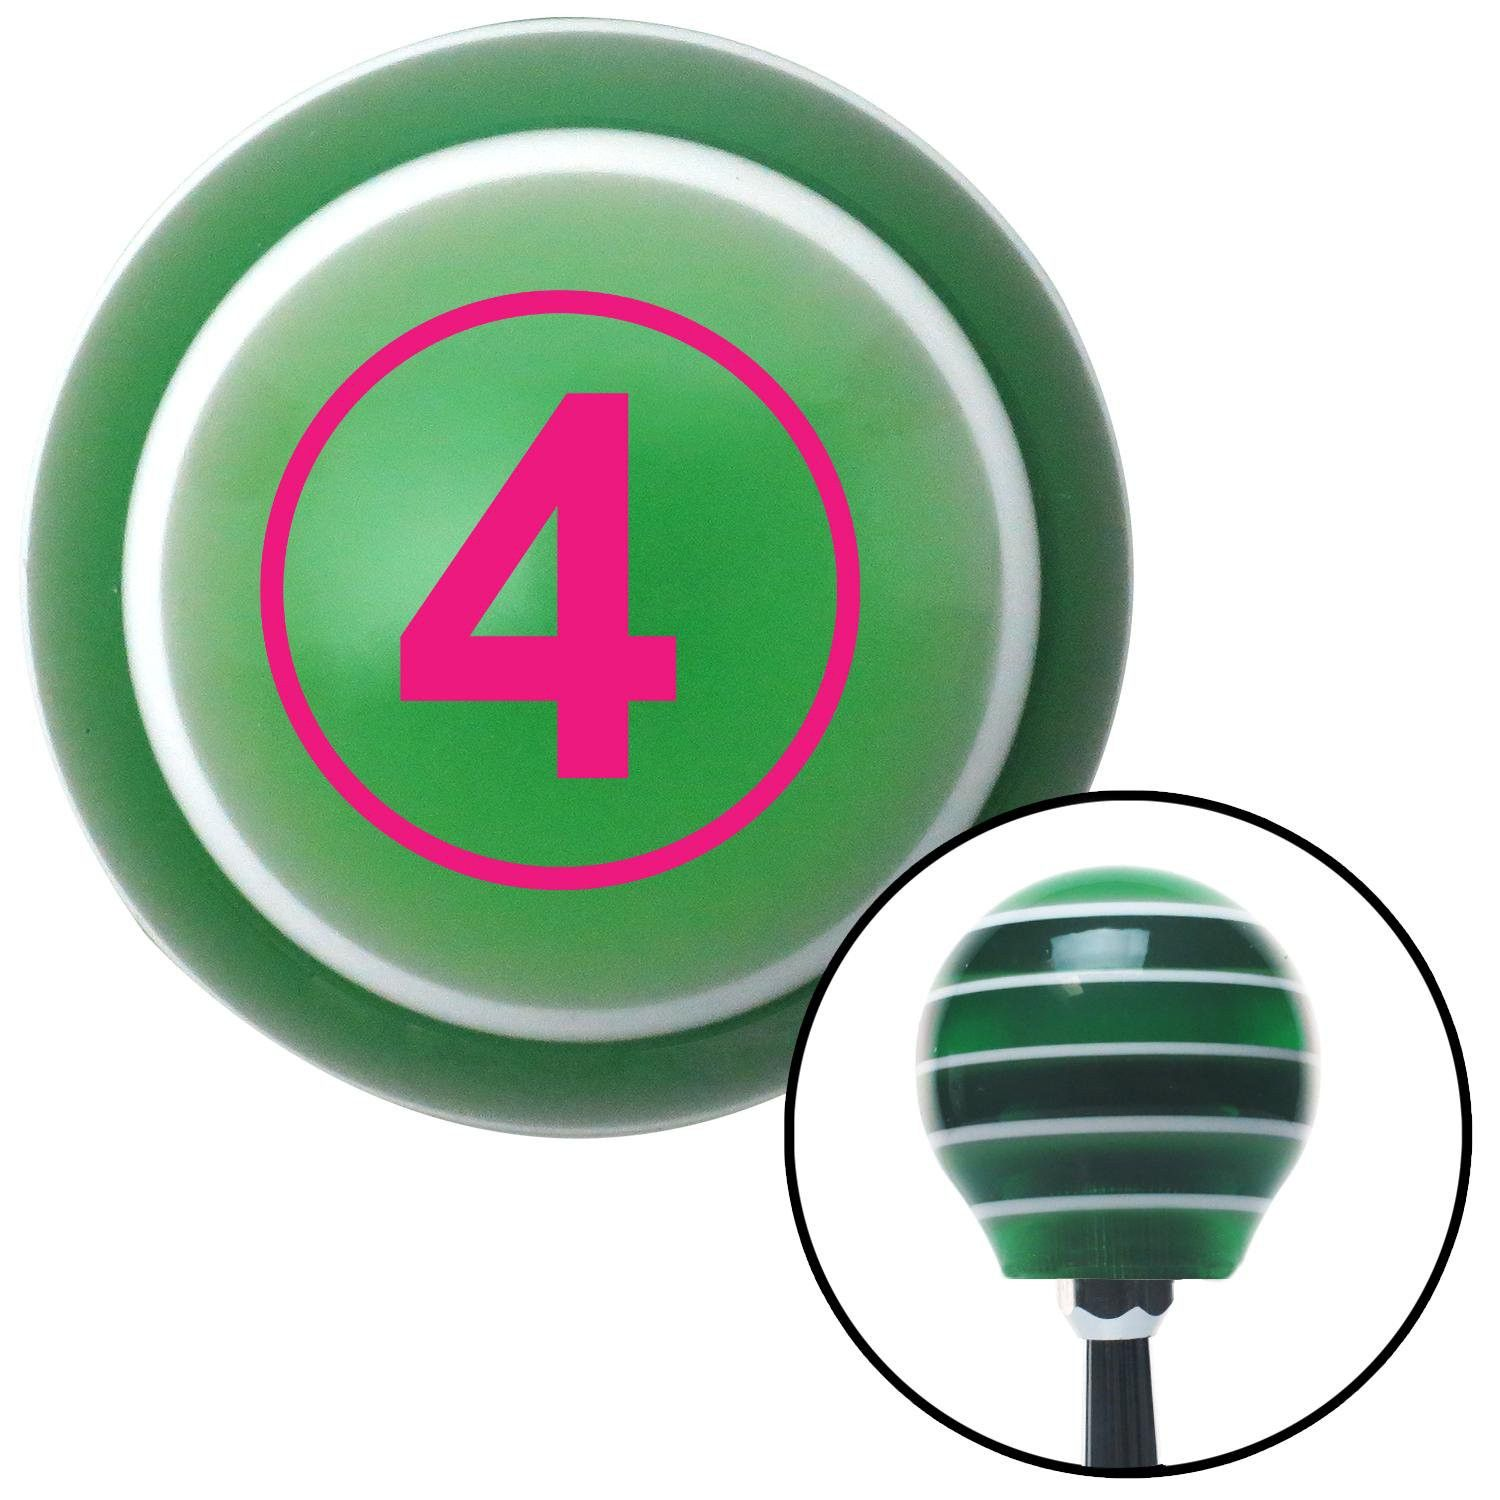 Pink Ball 4 Green Stripe Shift Knob with M16 x 15 Insert - Give your interior the ultimate look. American Shifter's Elite(TM) series shift knobs are made from the highest quality components resulting in a superior feel on every shift. Each shift knob is designed and customized in the USA by skilled shift knob artisans who have a trained eye on every detail. American Shifters shift knobs offers an exclusive aluminum threaded insert designed to be screwed onto your shift arm. You should avoid…